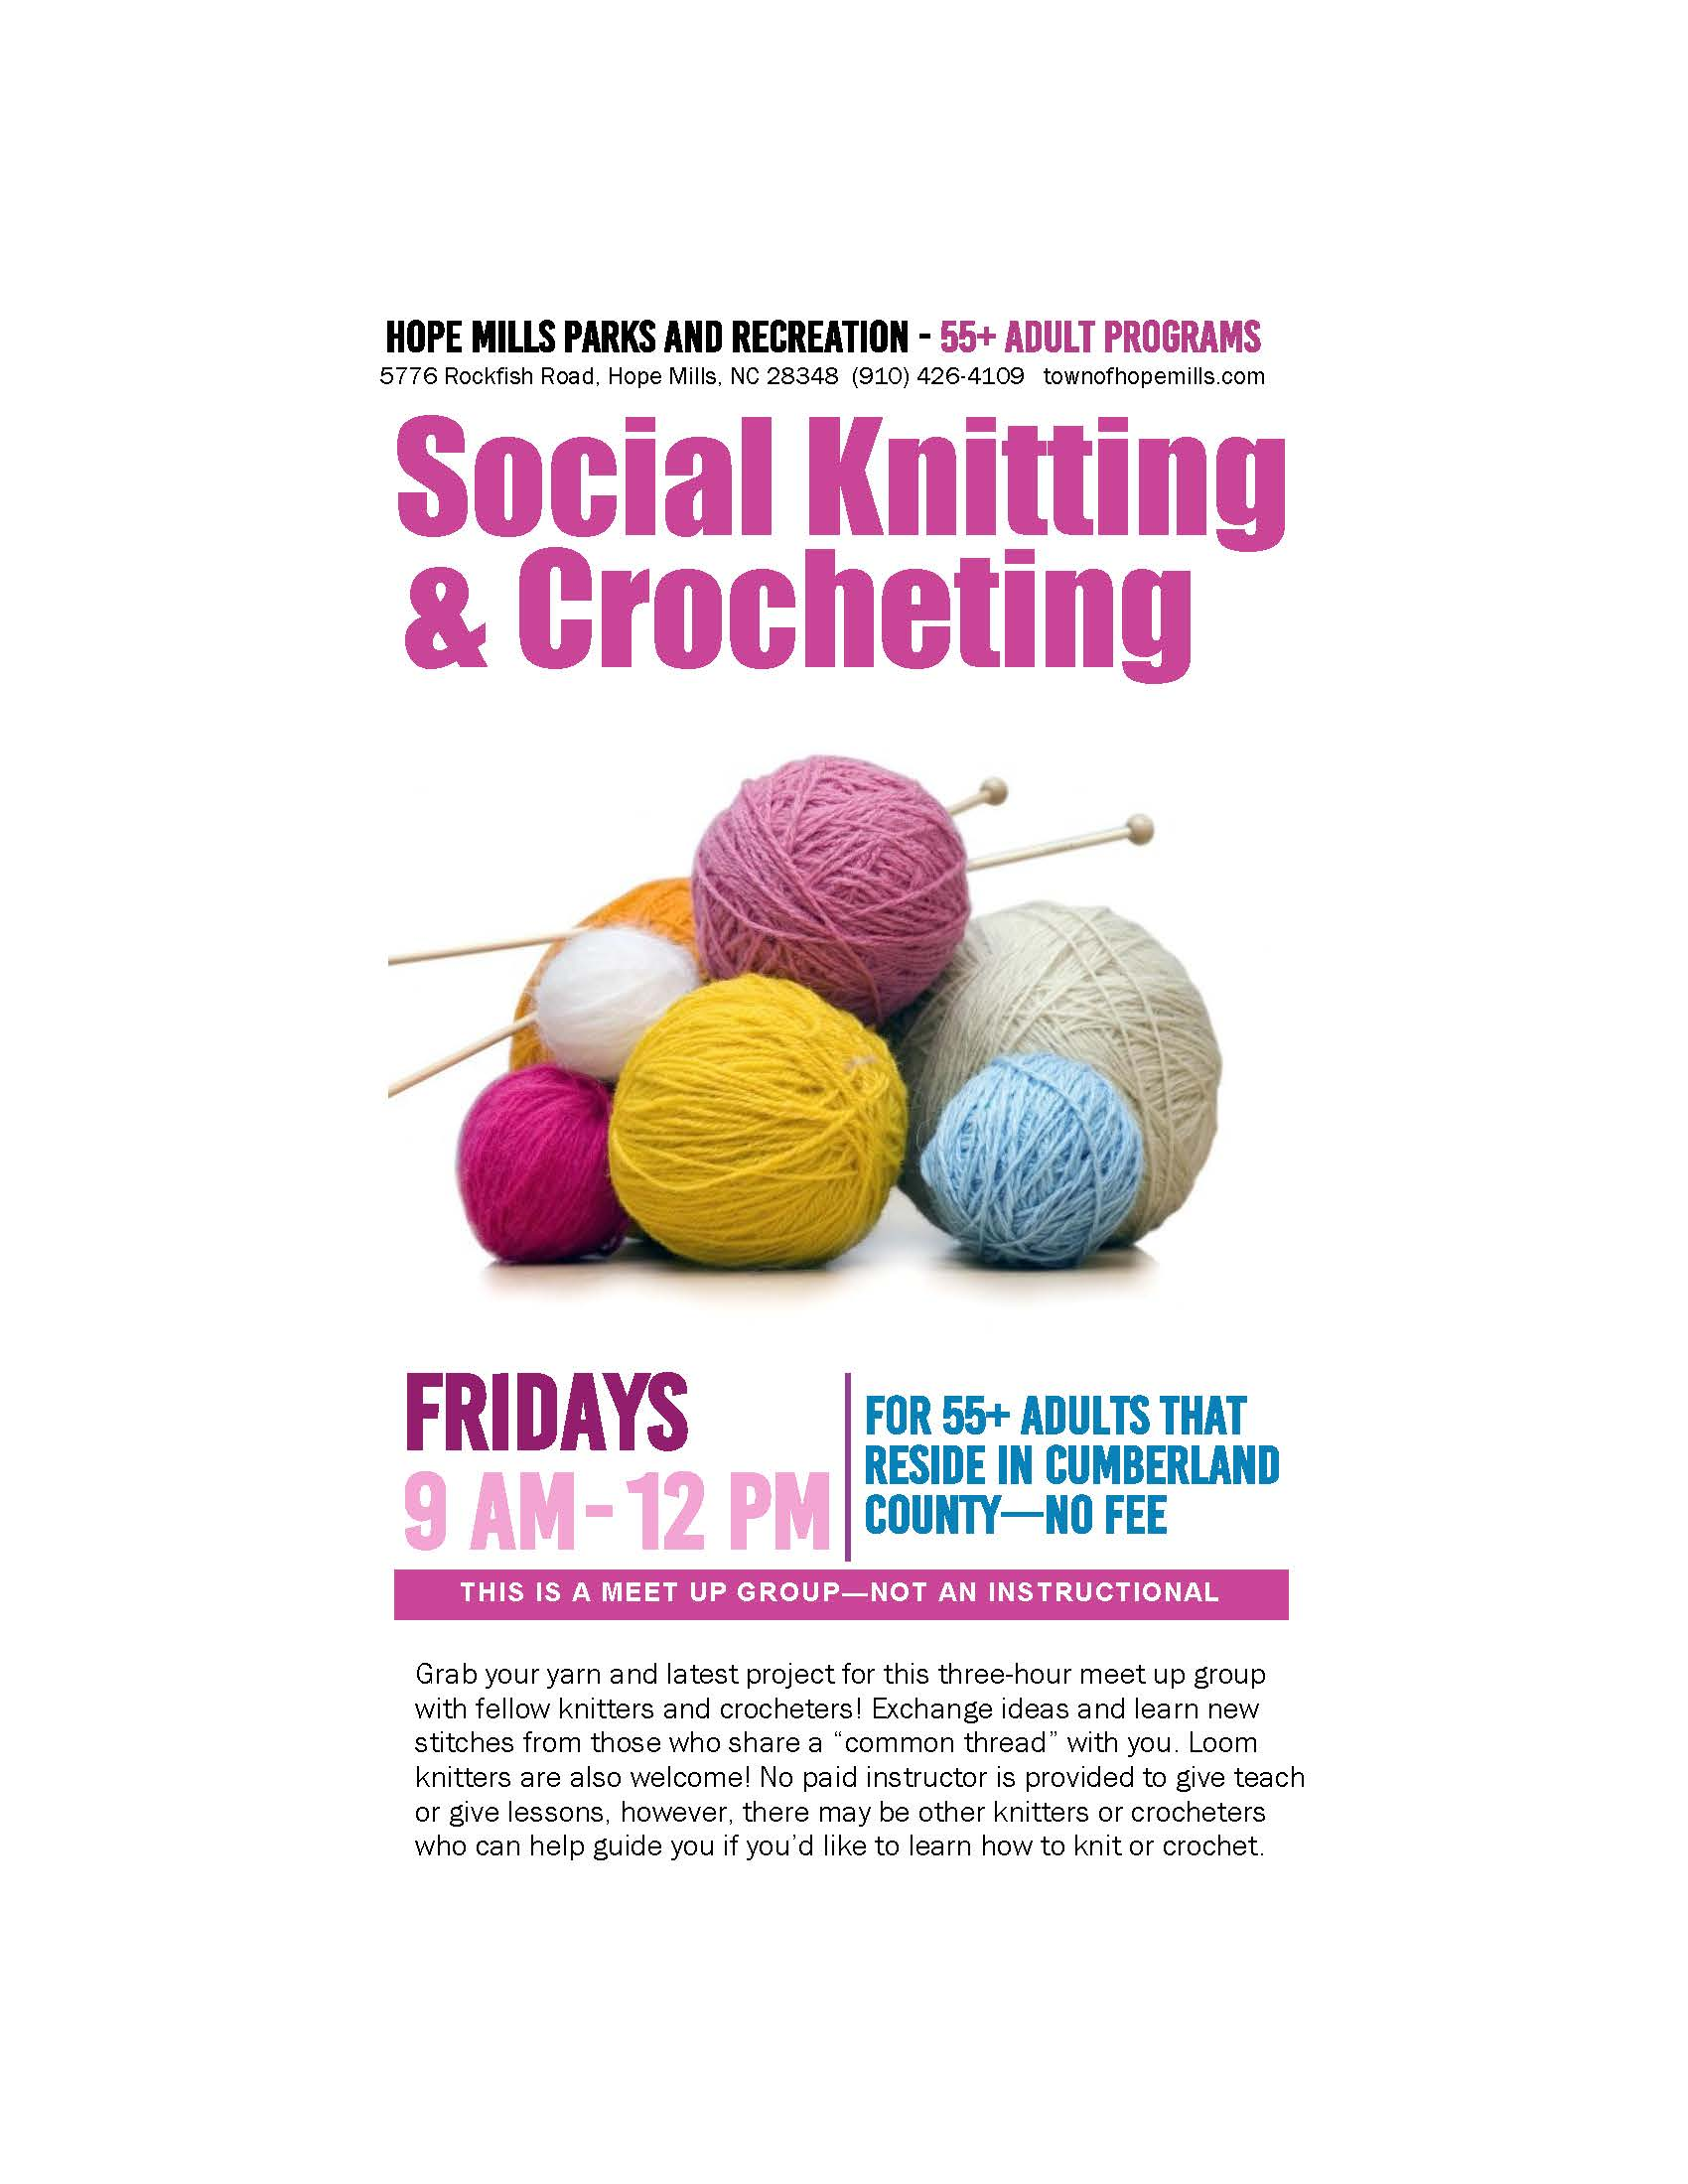 March 2019 Flyers_SOCIAL KNITTINGCROCHETING